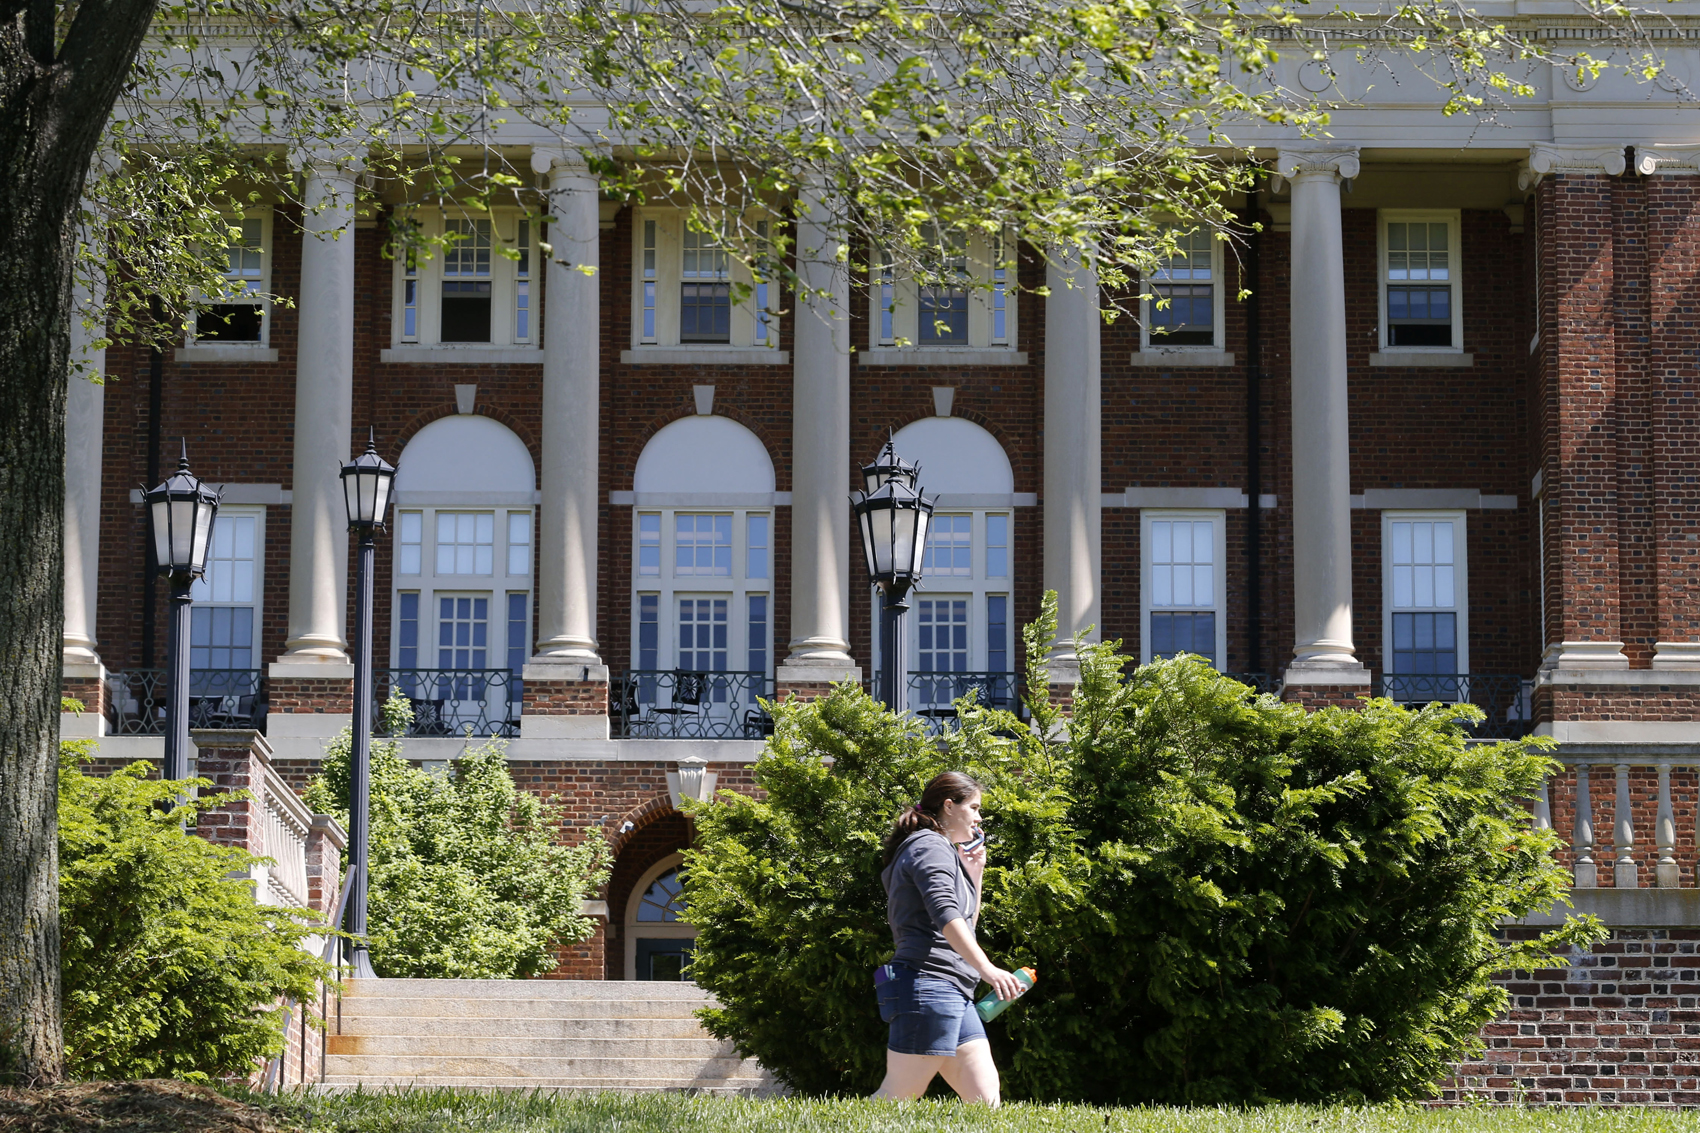 Private Colleges Turn To Tuition Slashing To Stay Alive In Crowded Market